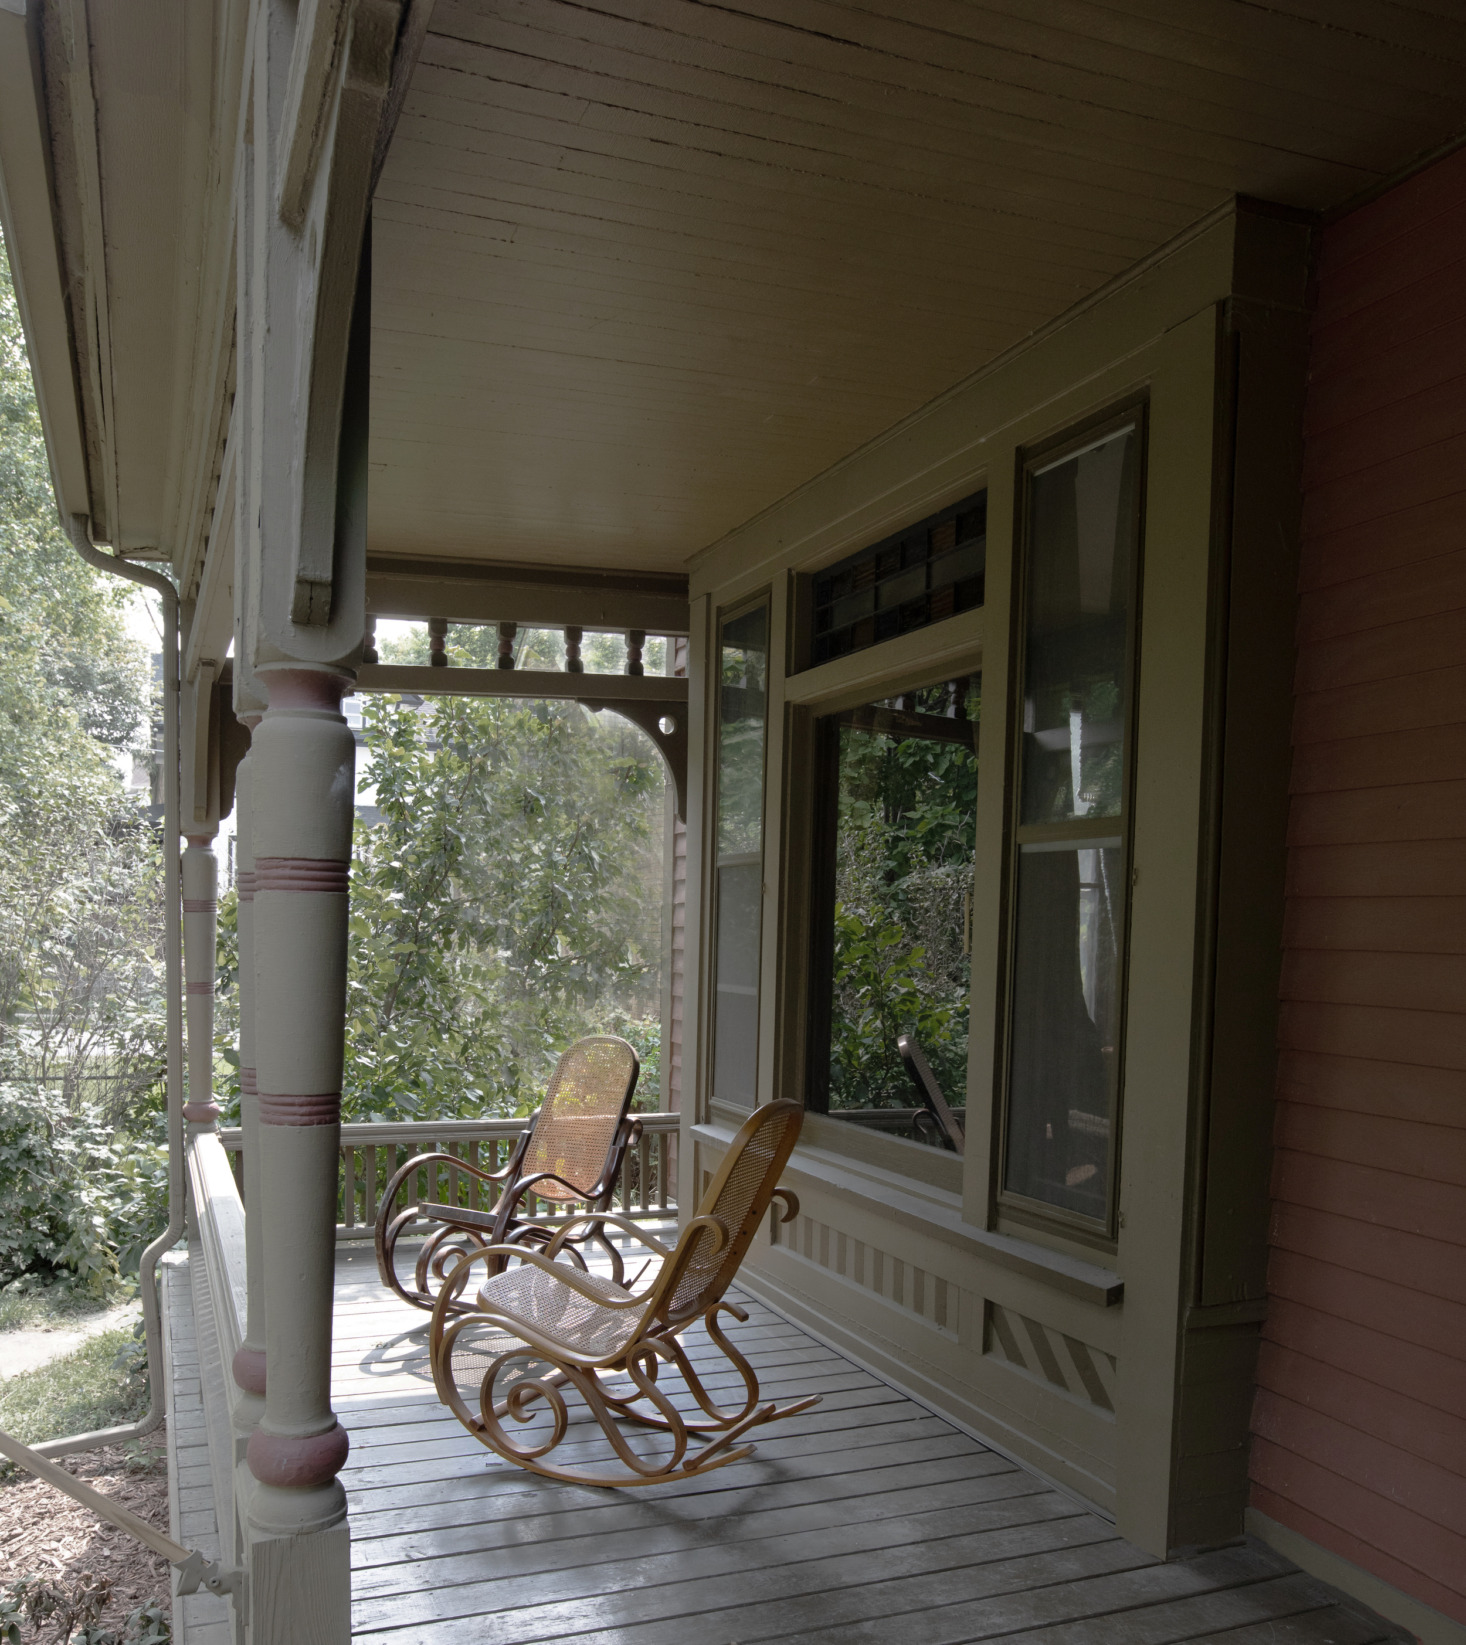 Two old-world rocking chairs on the porch. And the moody palette continues outside: The exterior is painted in Meadow Trail and Moss Rose, both by Sherwin Williams.